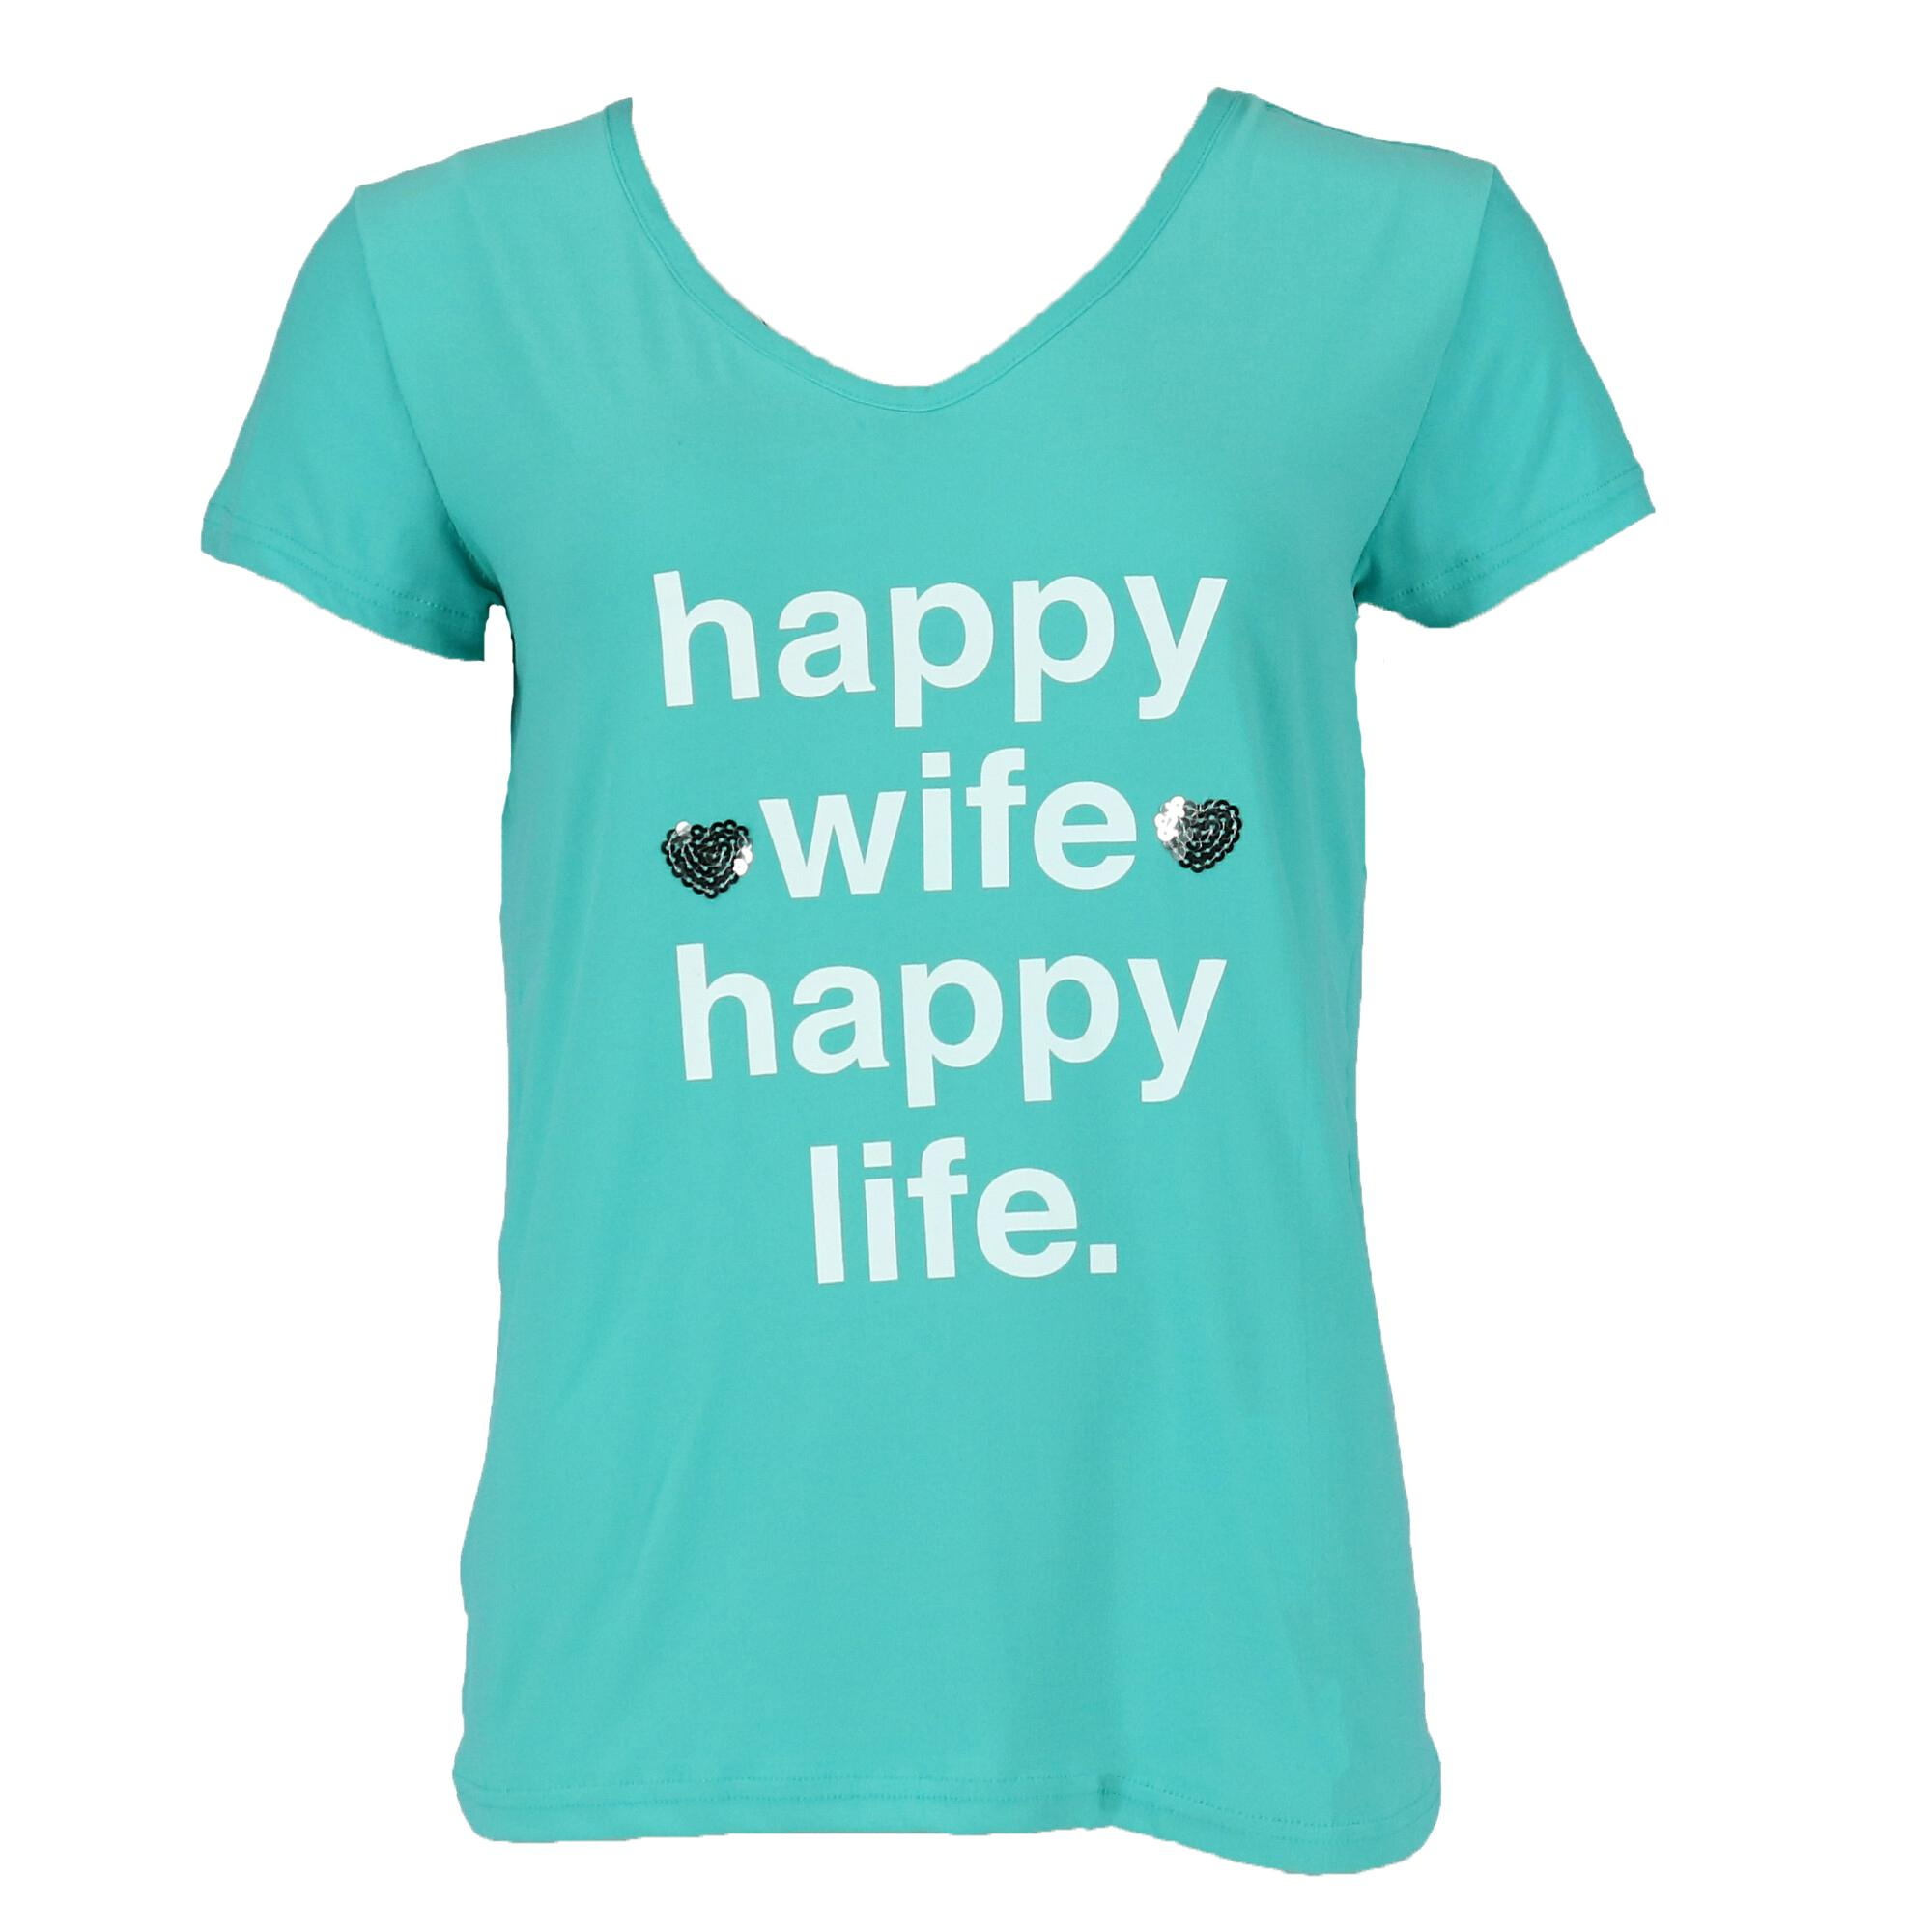 Not a Morning Person Women's Plus Size Happy Wife Tee and Joggers Pajama Set - image 3 of 4